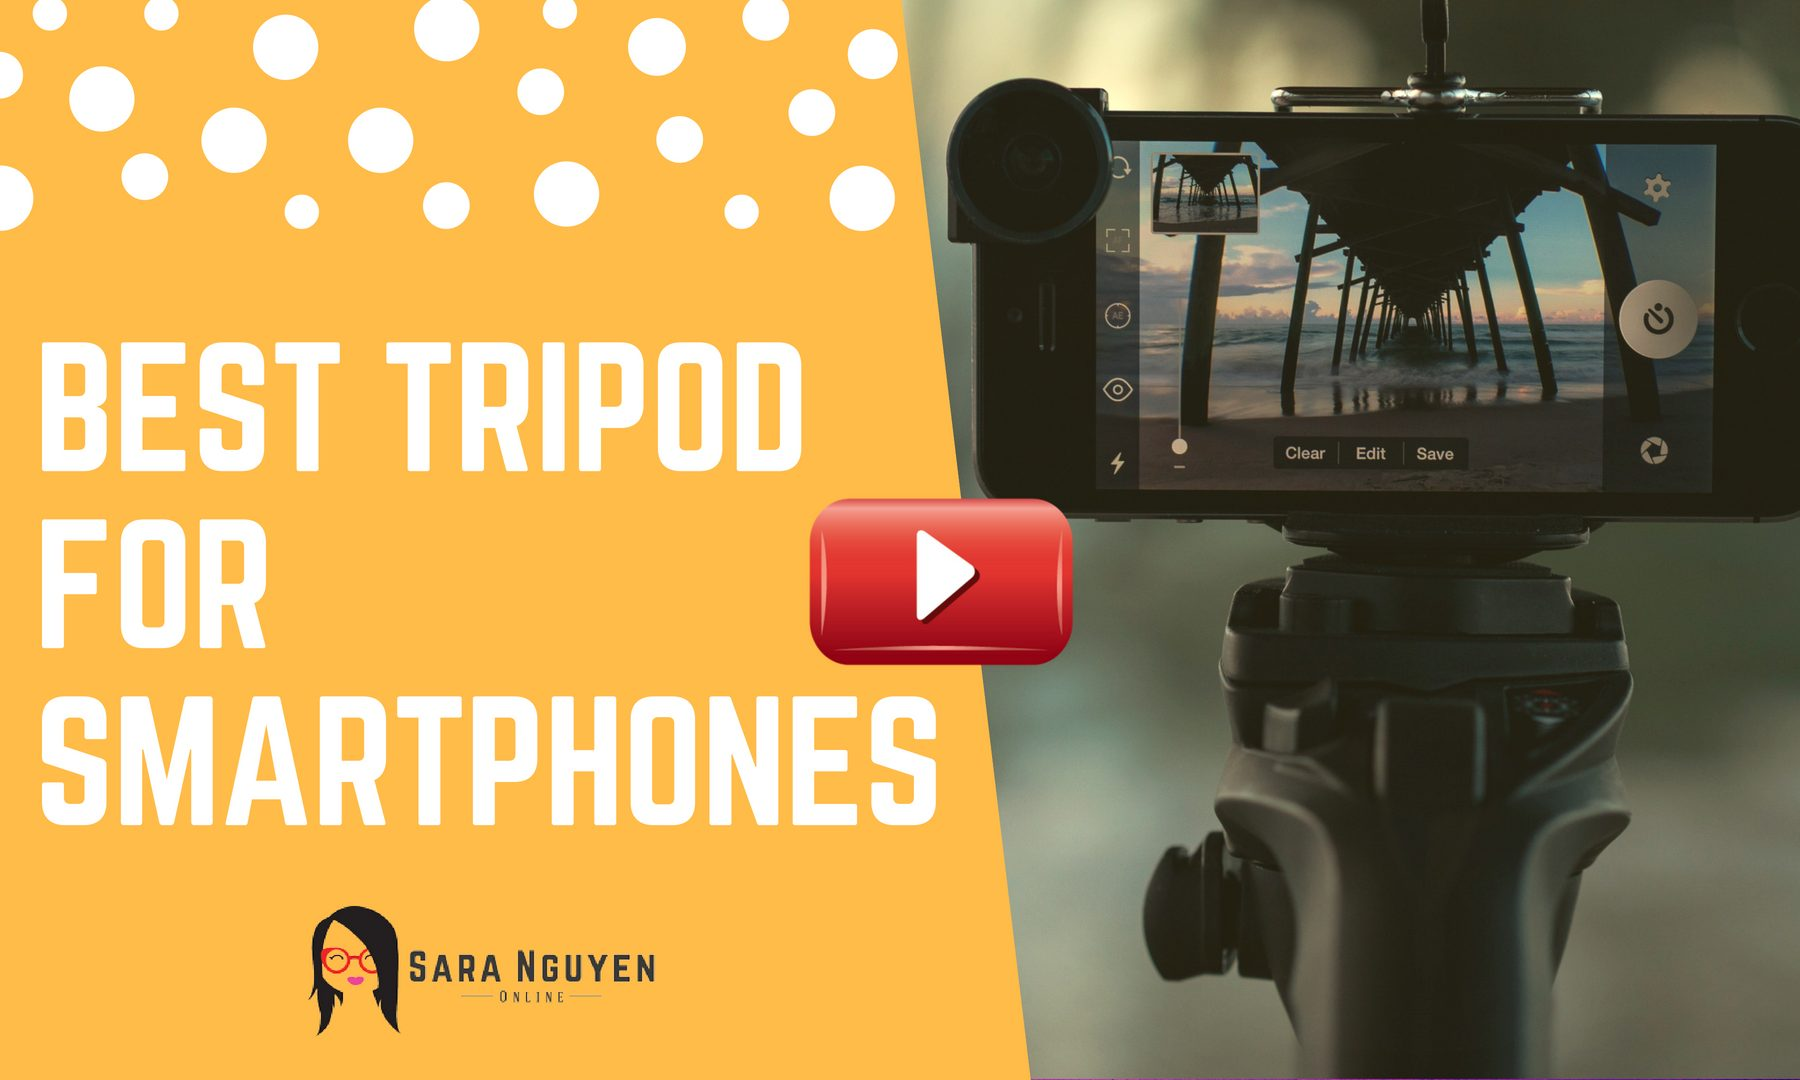 Best tripod for smartphones?